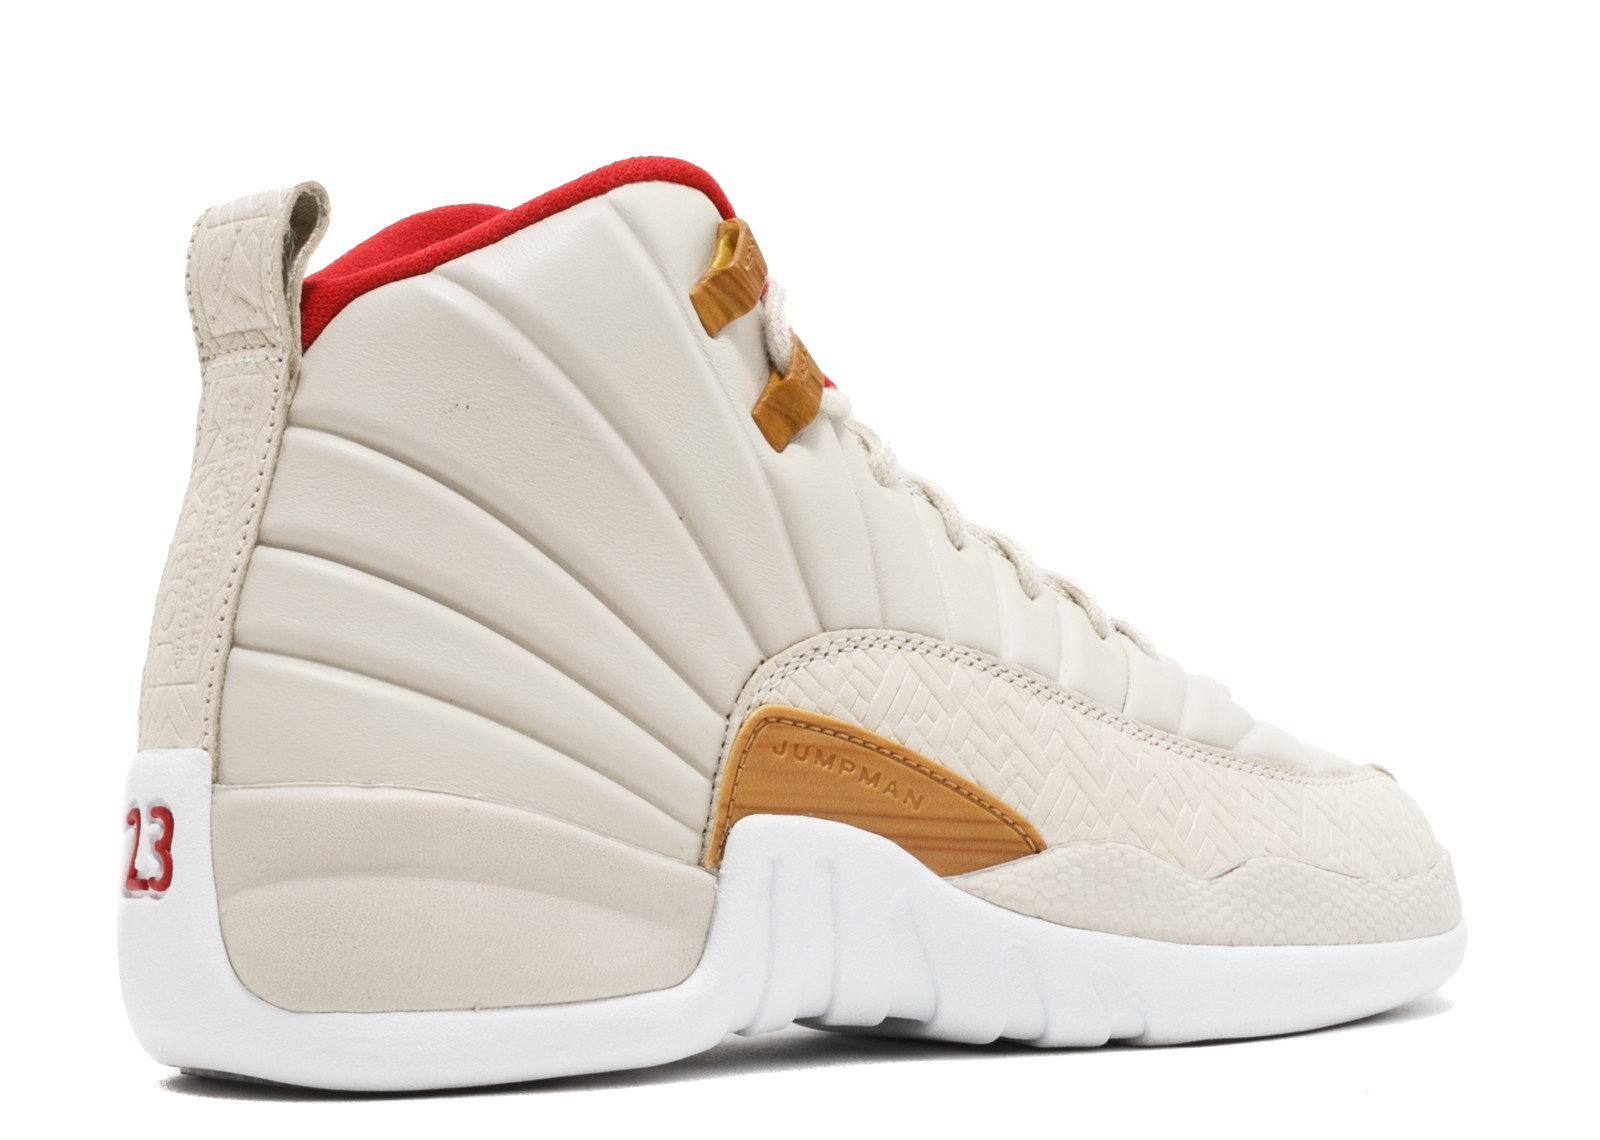 ... Nike - Kids Air Jordan 12 XII Retro GS Chinese New Year Tan White Red  881428 ... 88d8cee9cd